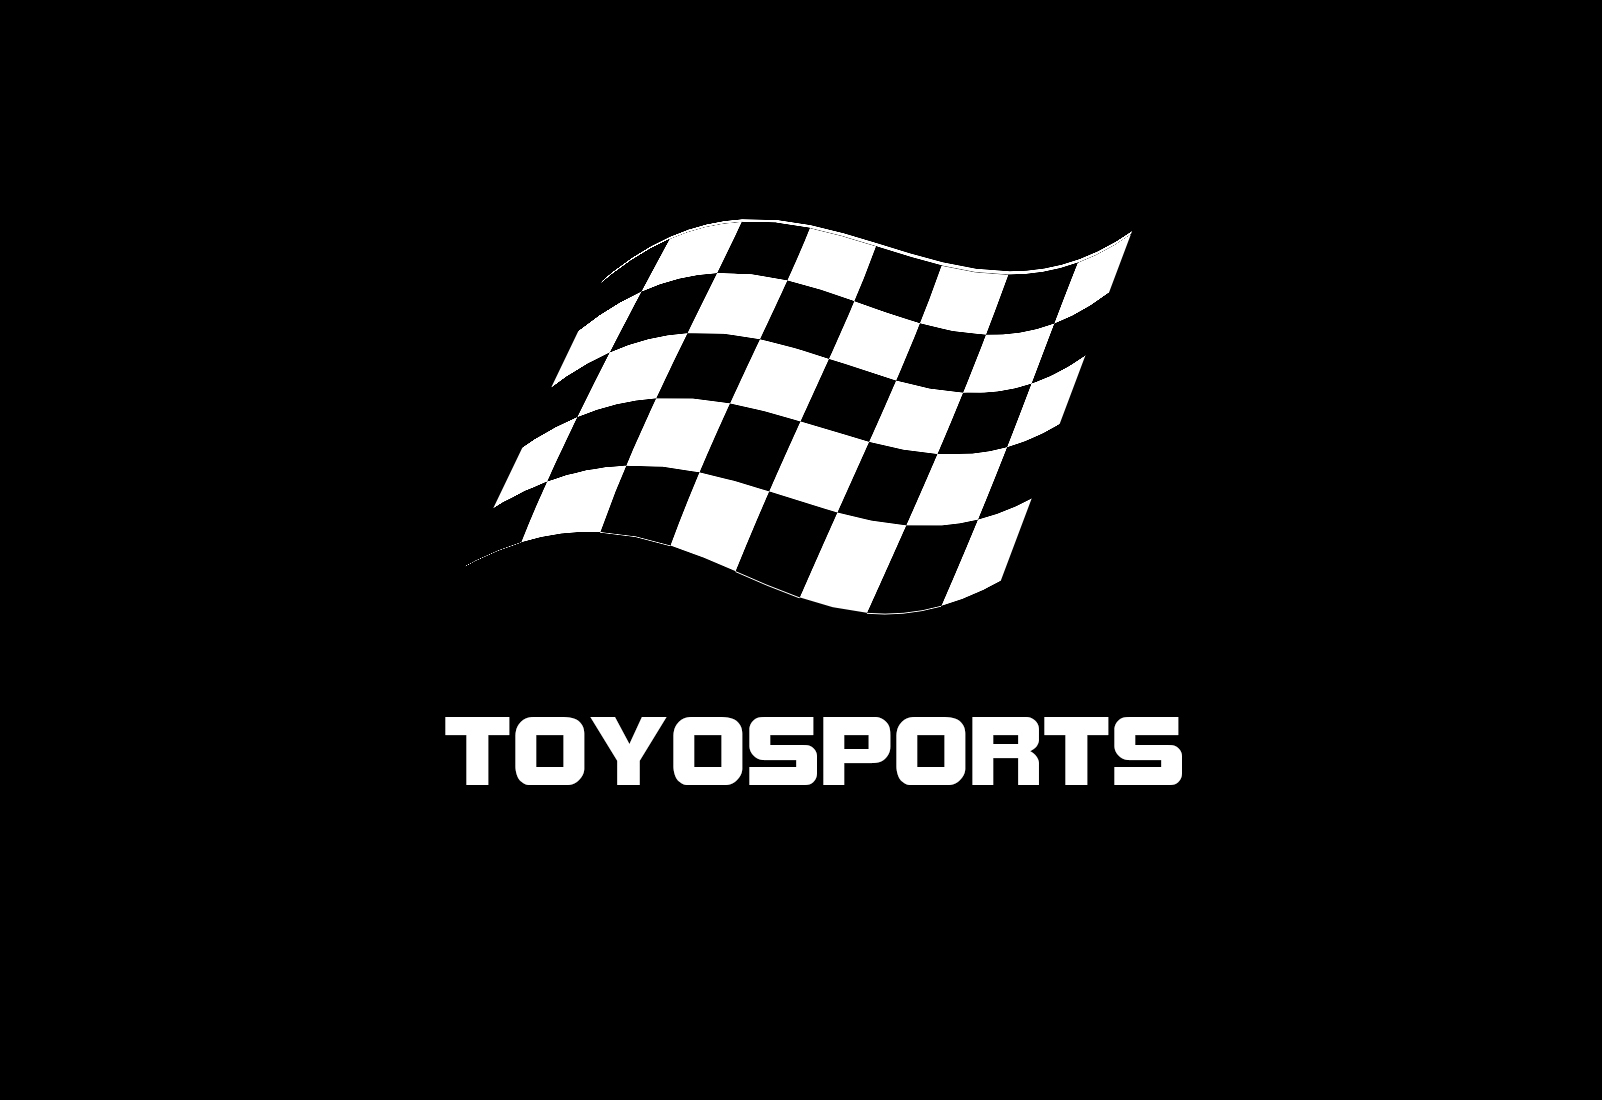 toyosports (UK) ltd